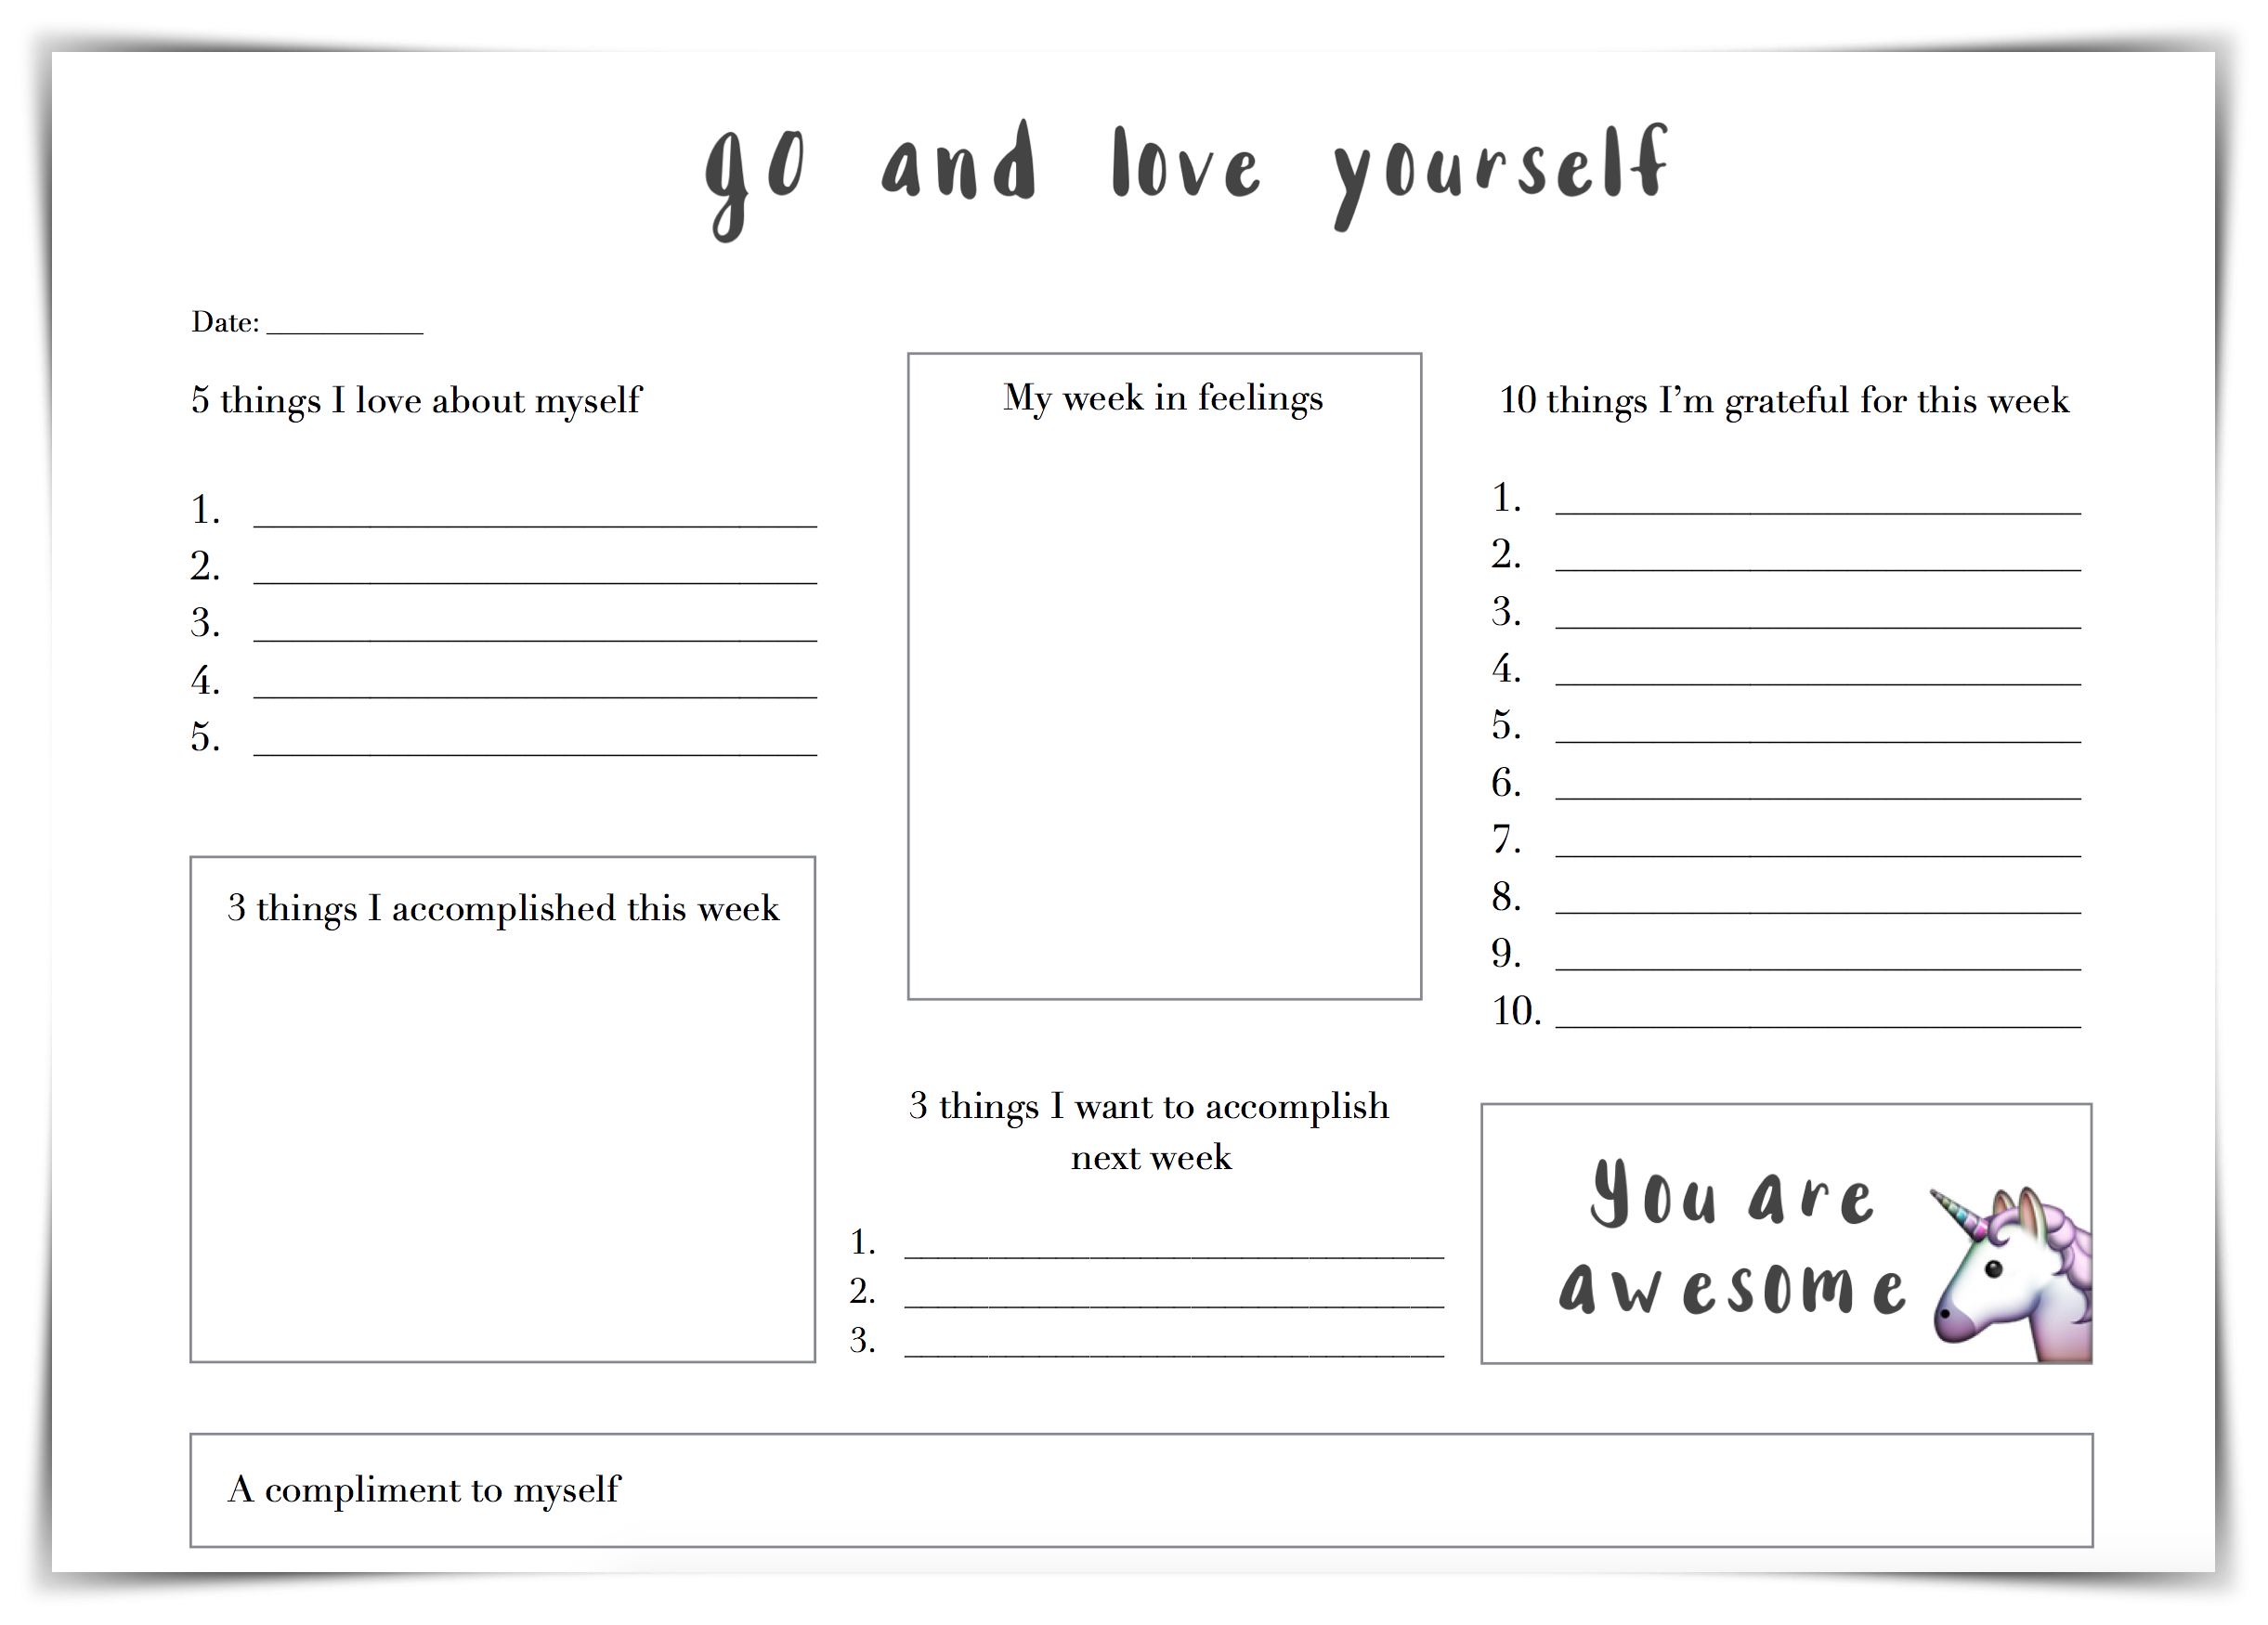 12 Tips How To Improve Self Love  Free Worksheet  Valeriehusemann With Regard To Building Self Esteem Worksheets